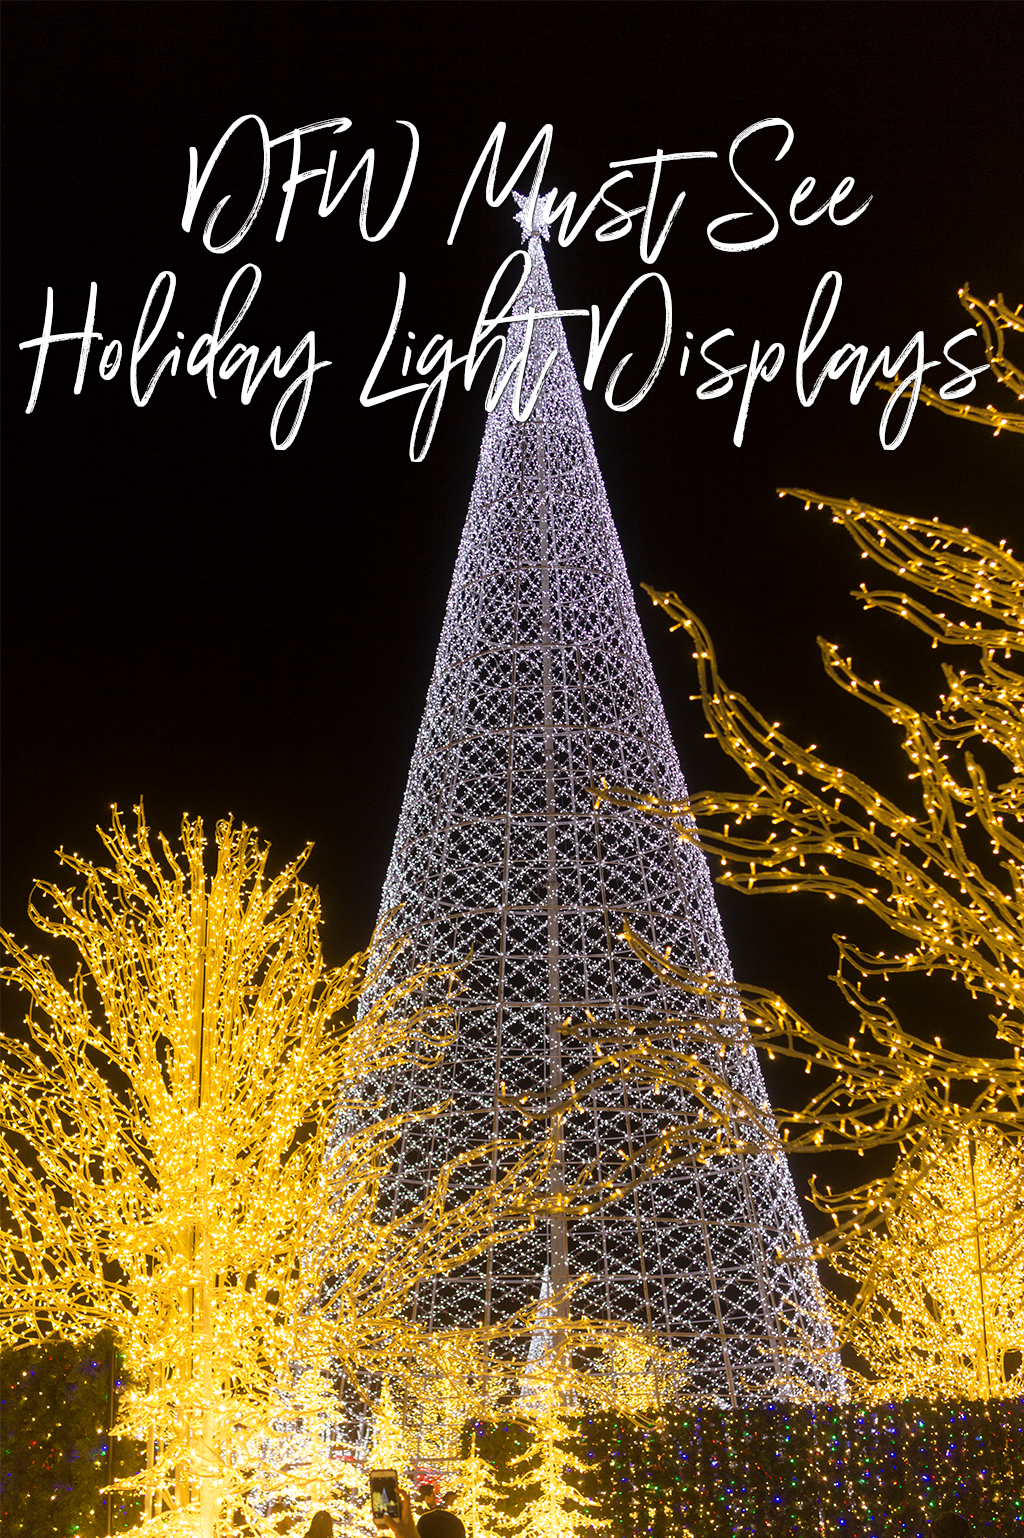 Must see Holiday lights in DFW